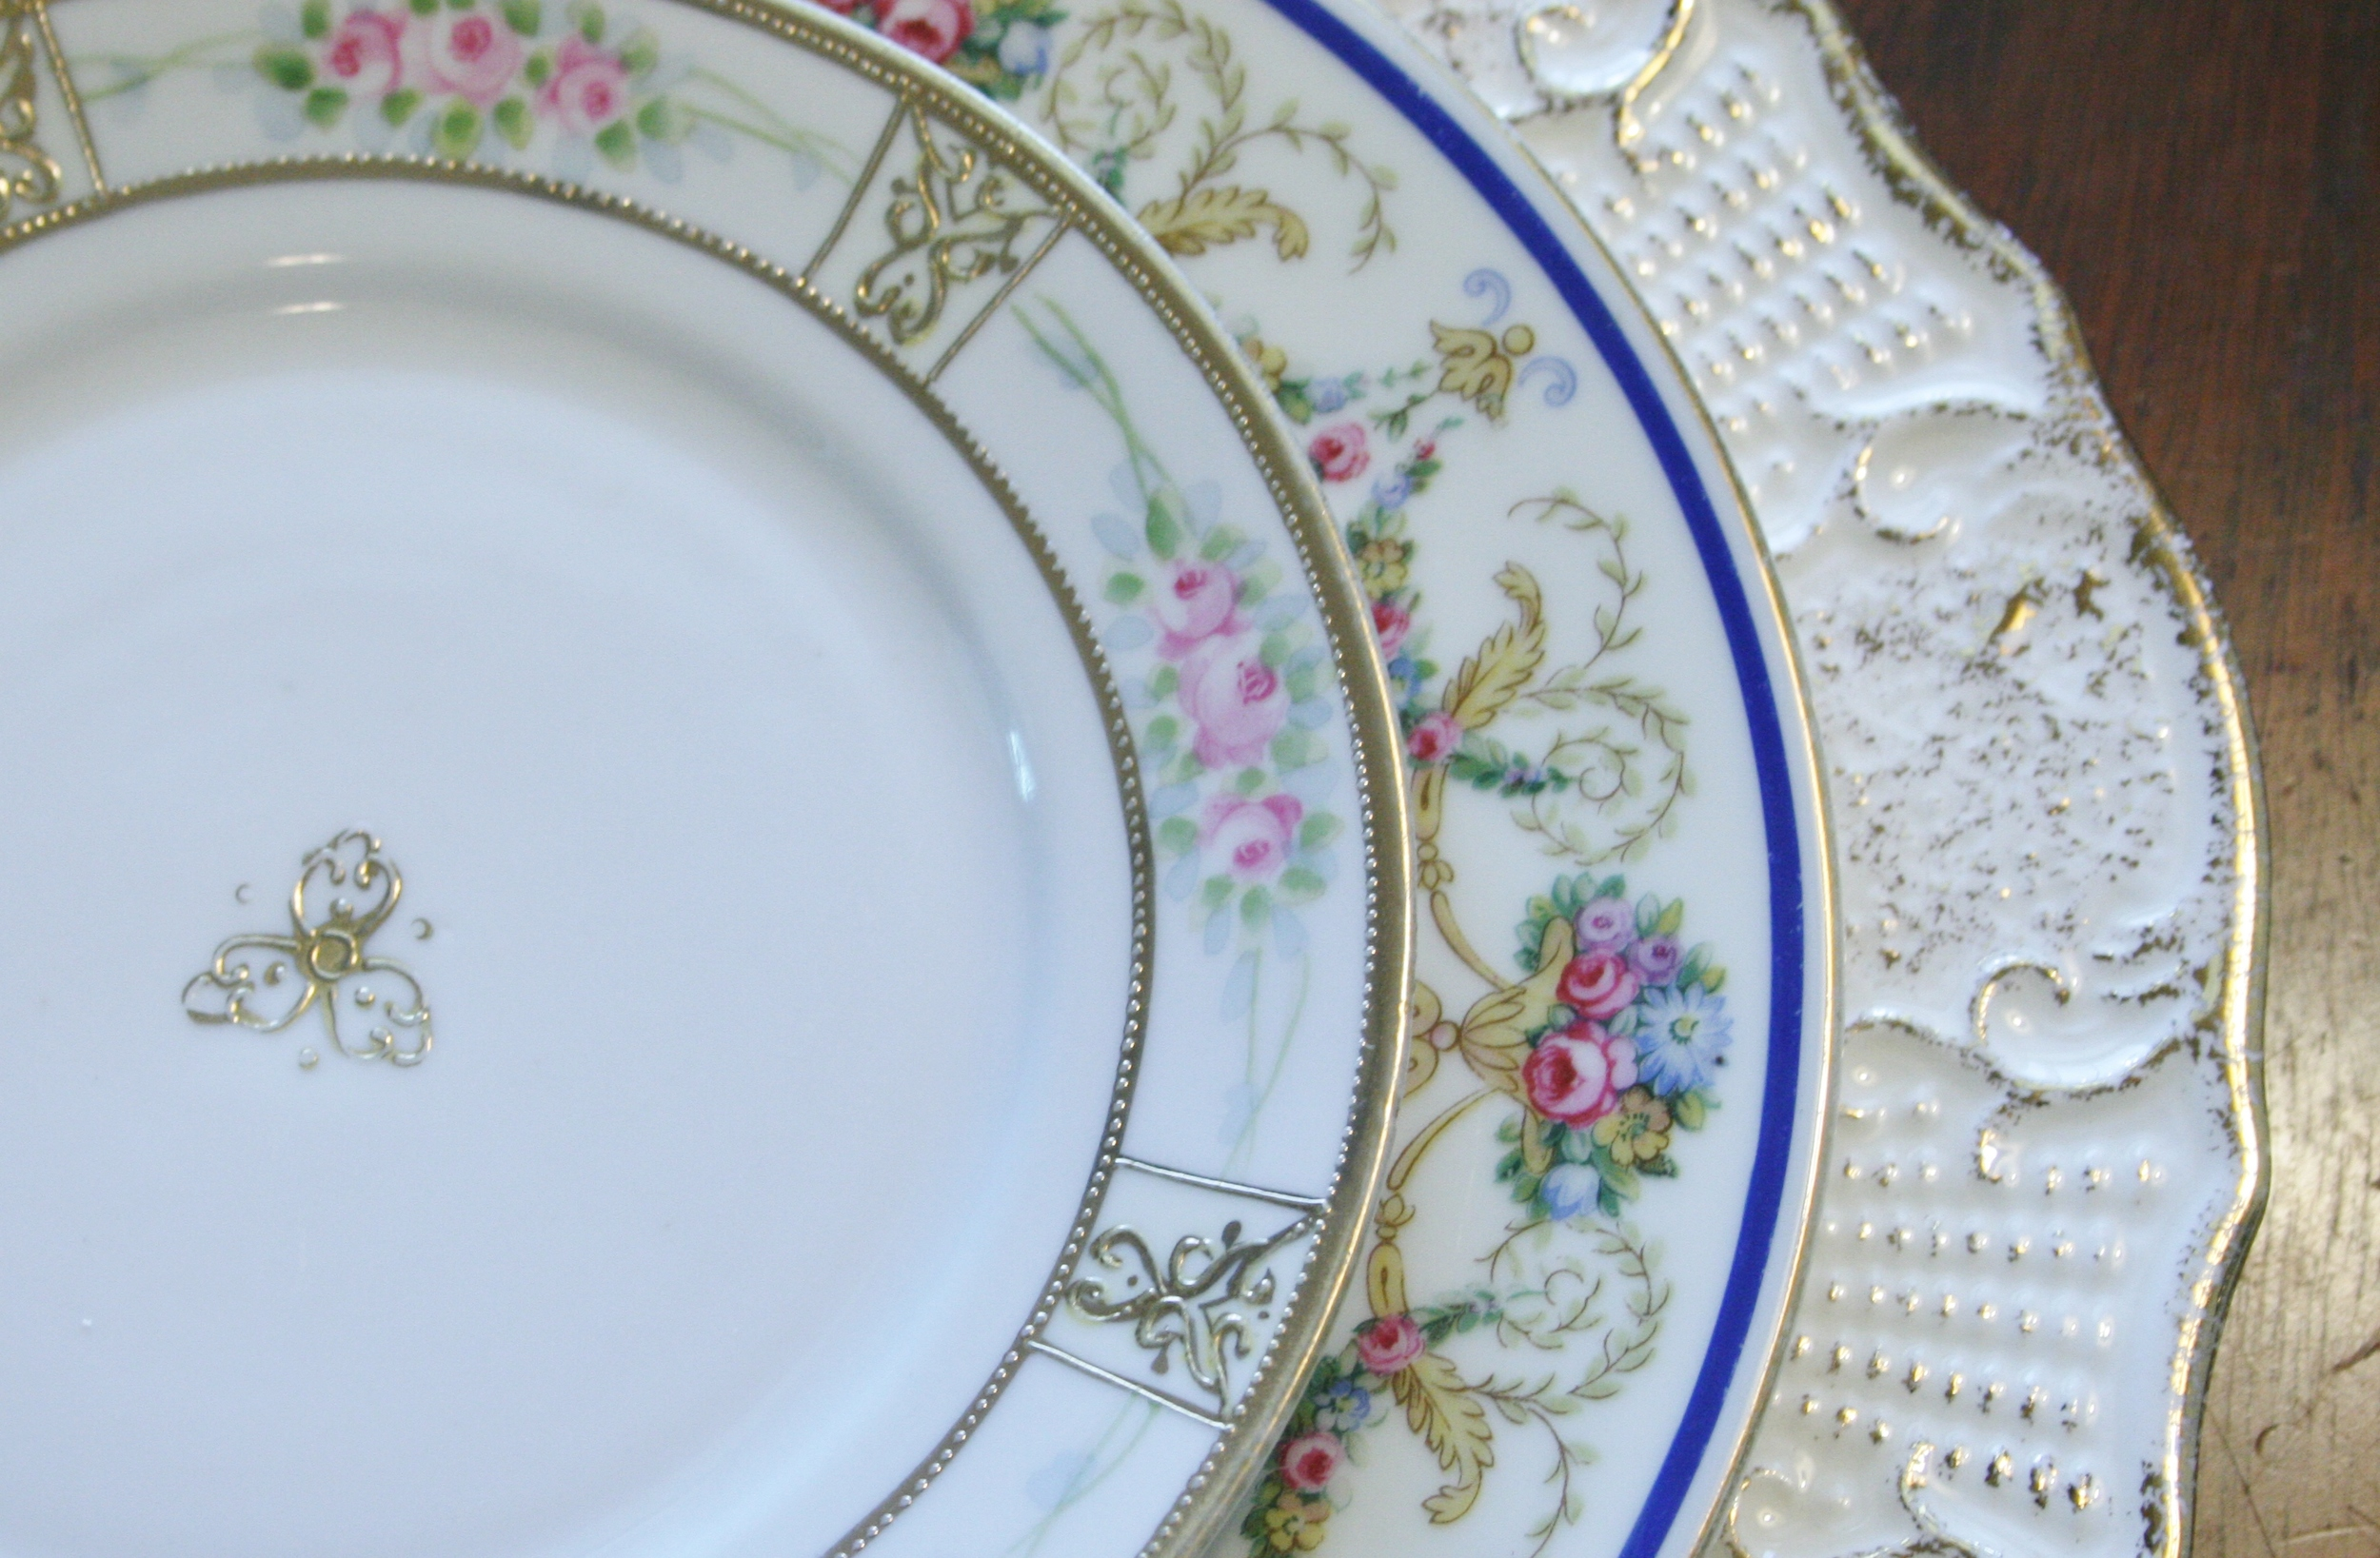 Mismatched china rentals